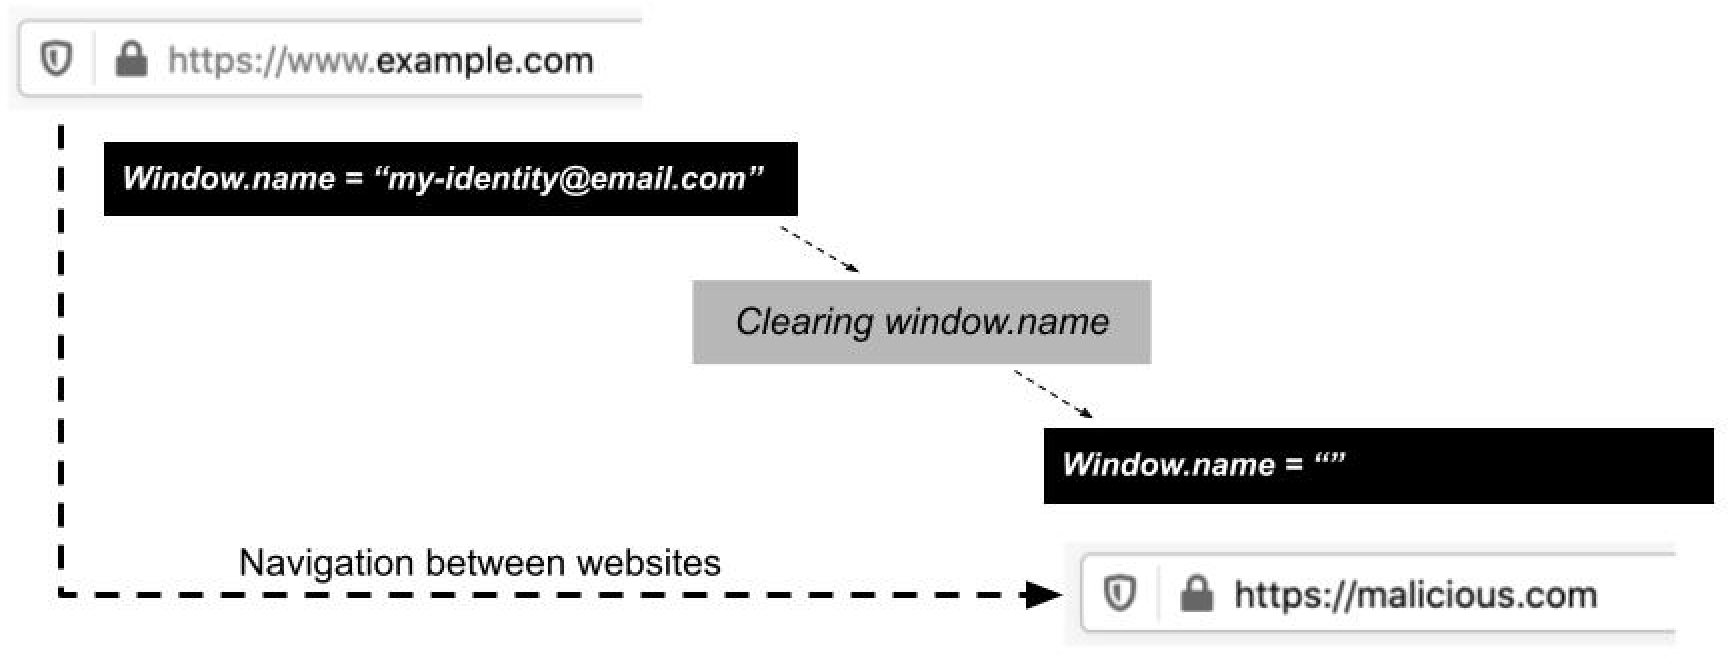 Firefox 88 clearing window.name after cross-origin navigation.